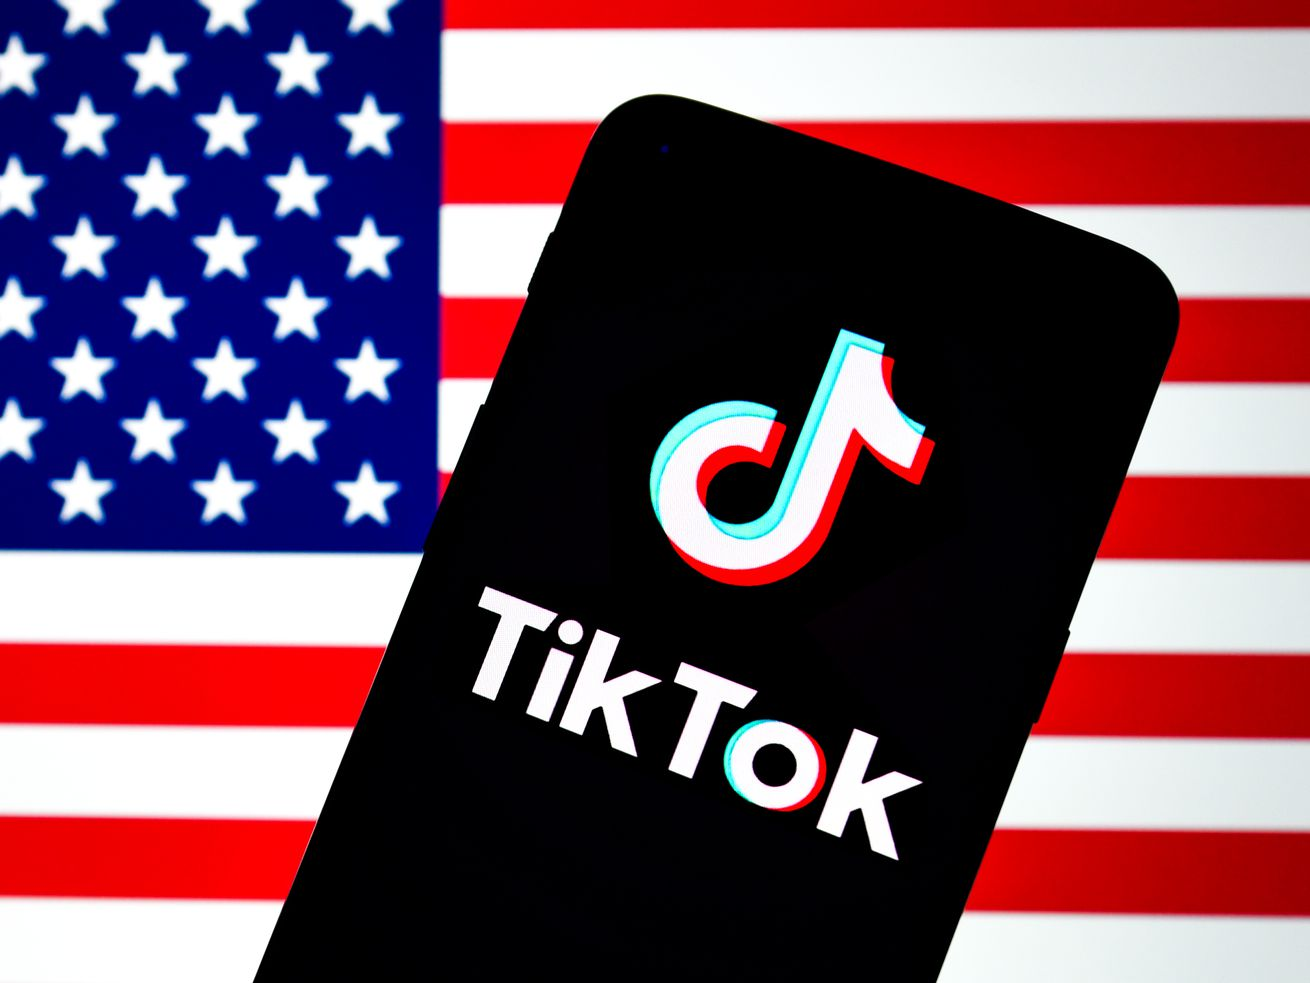 In this photo illustration, a TikTok logo is displayed on a smartphone with an American flag in the background.